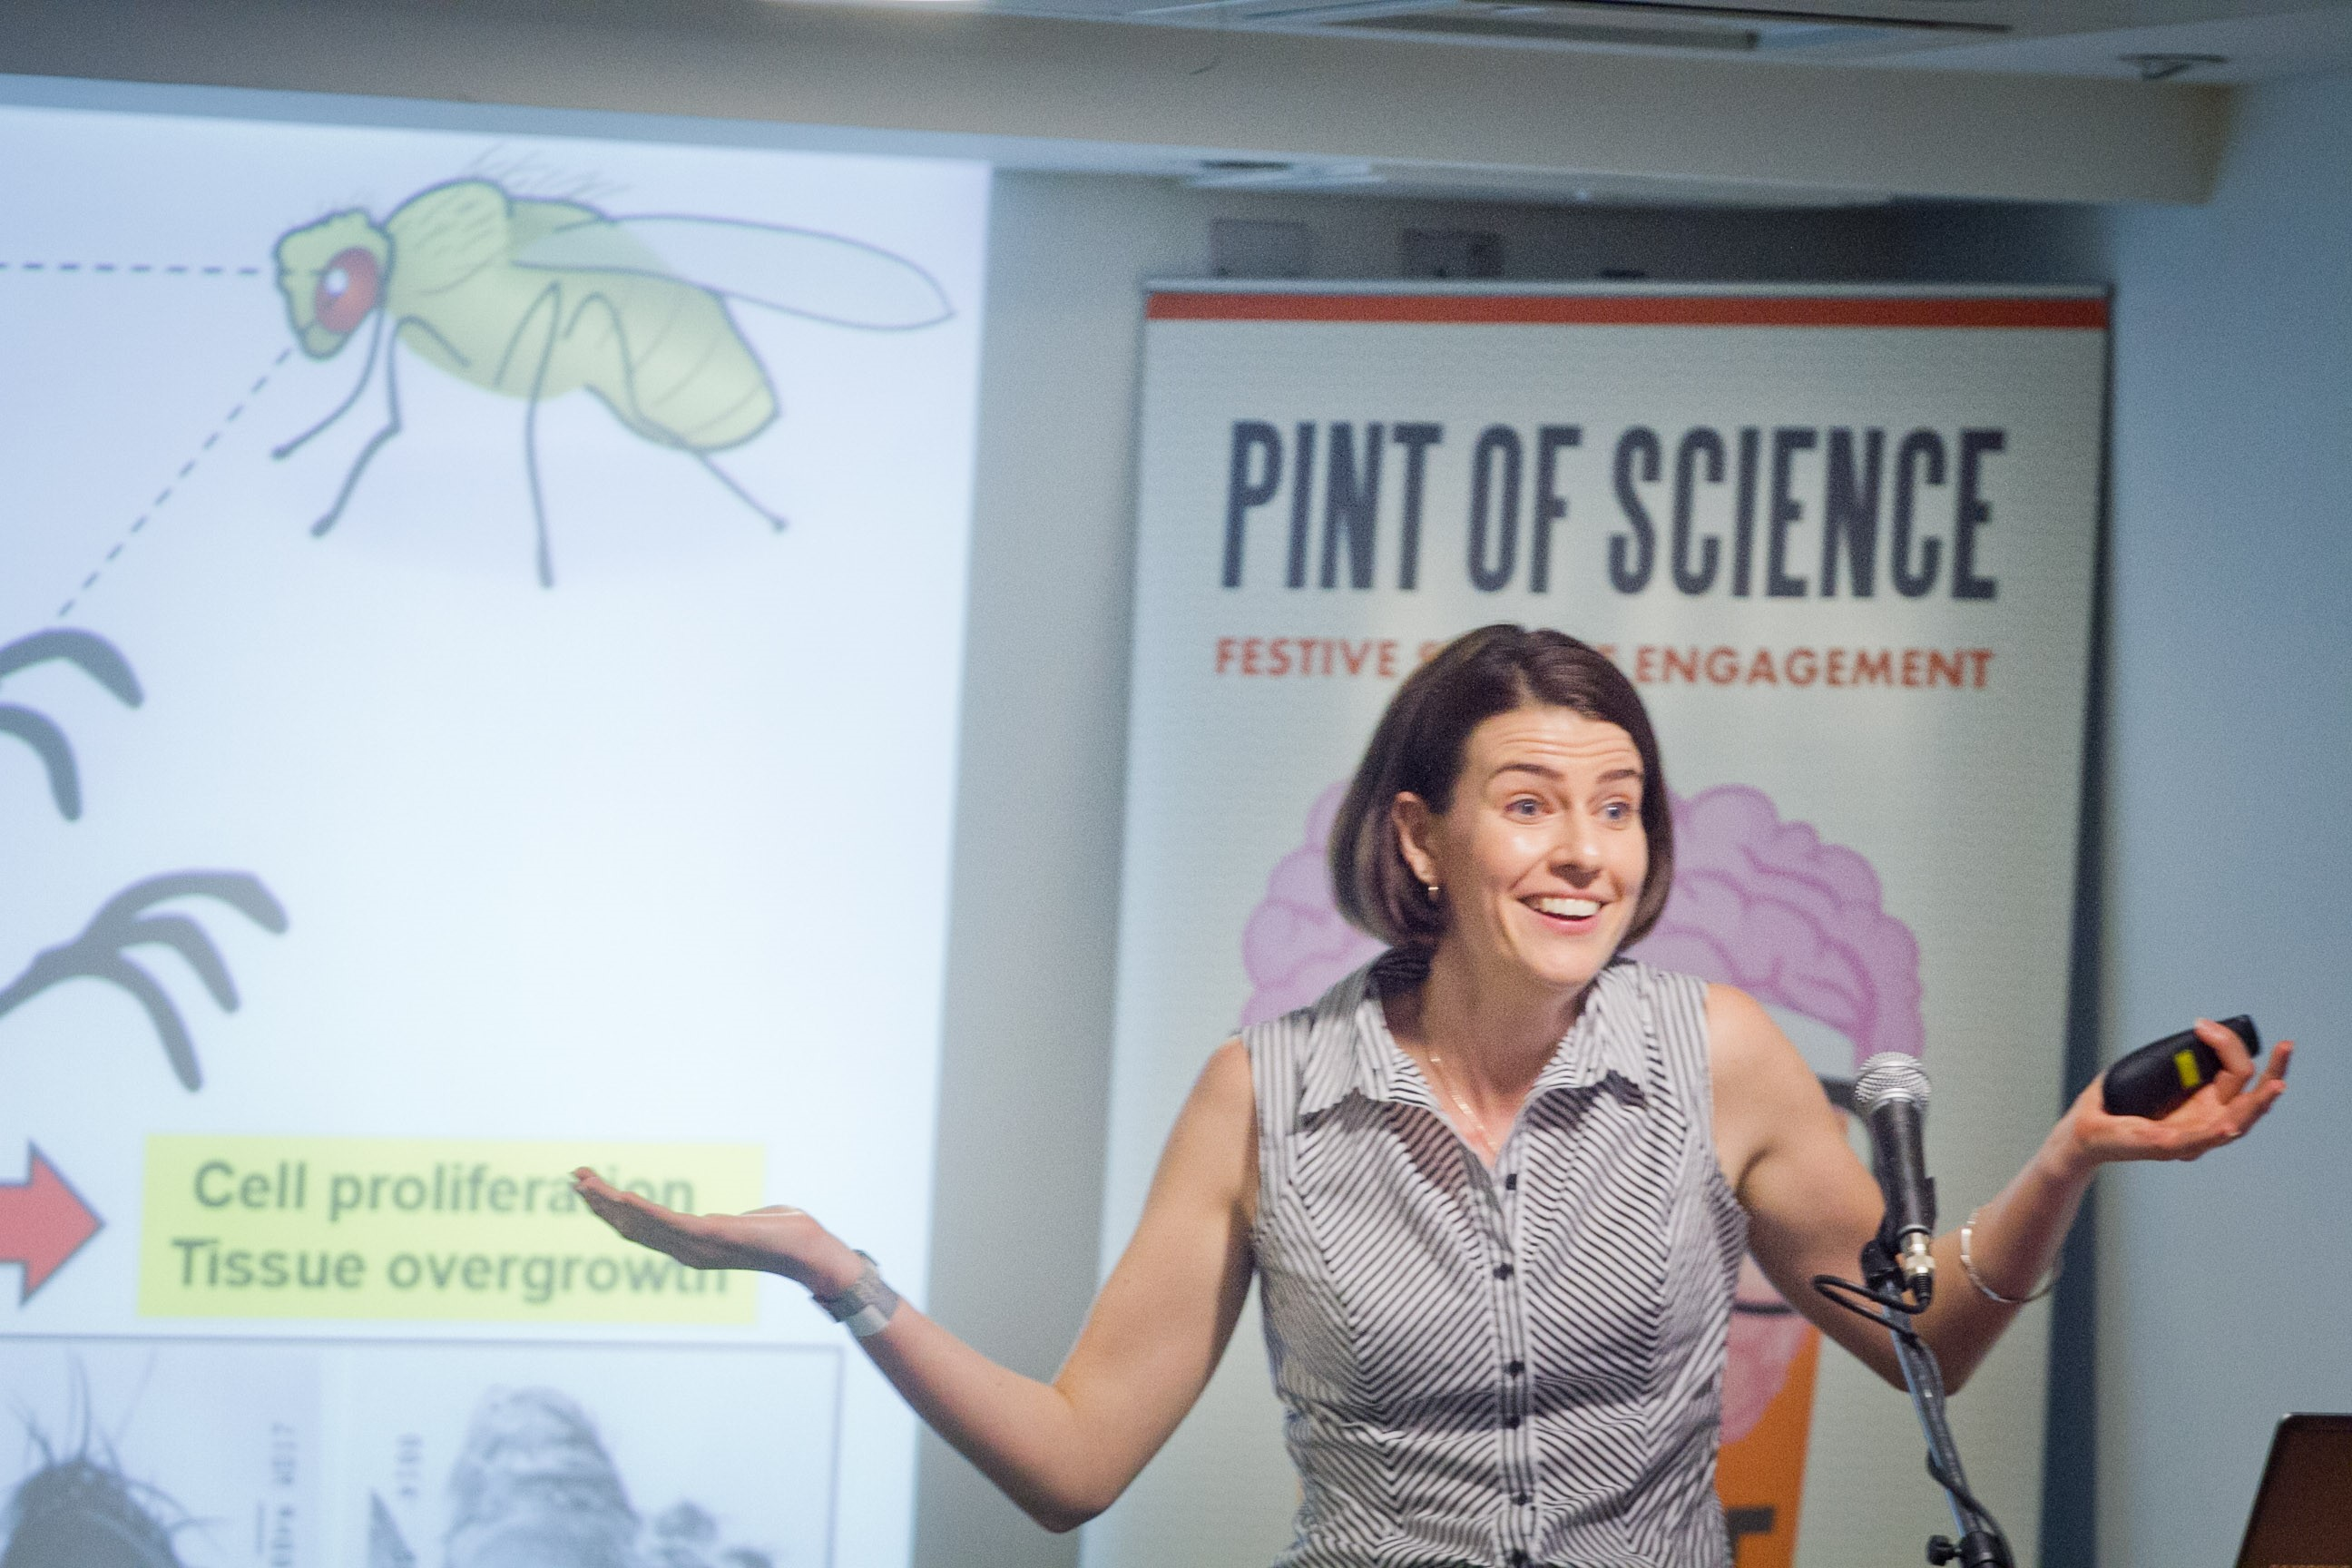 Aussie Scientist Dr Rachael Barry of Imperial College London explaining how fruit flies can be used to model undead cells. Photo credit: The London Lens Project.